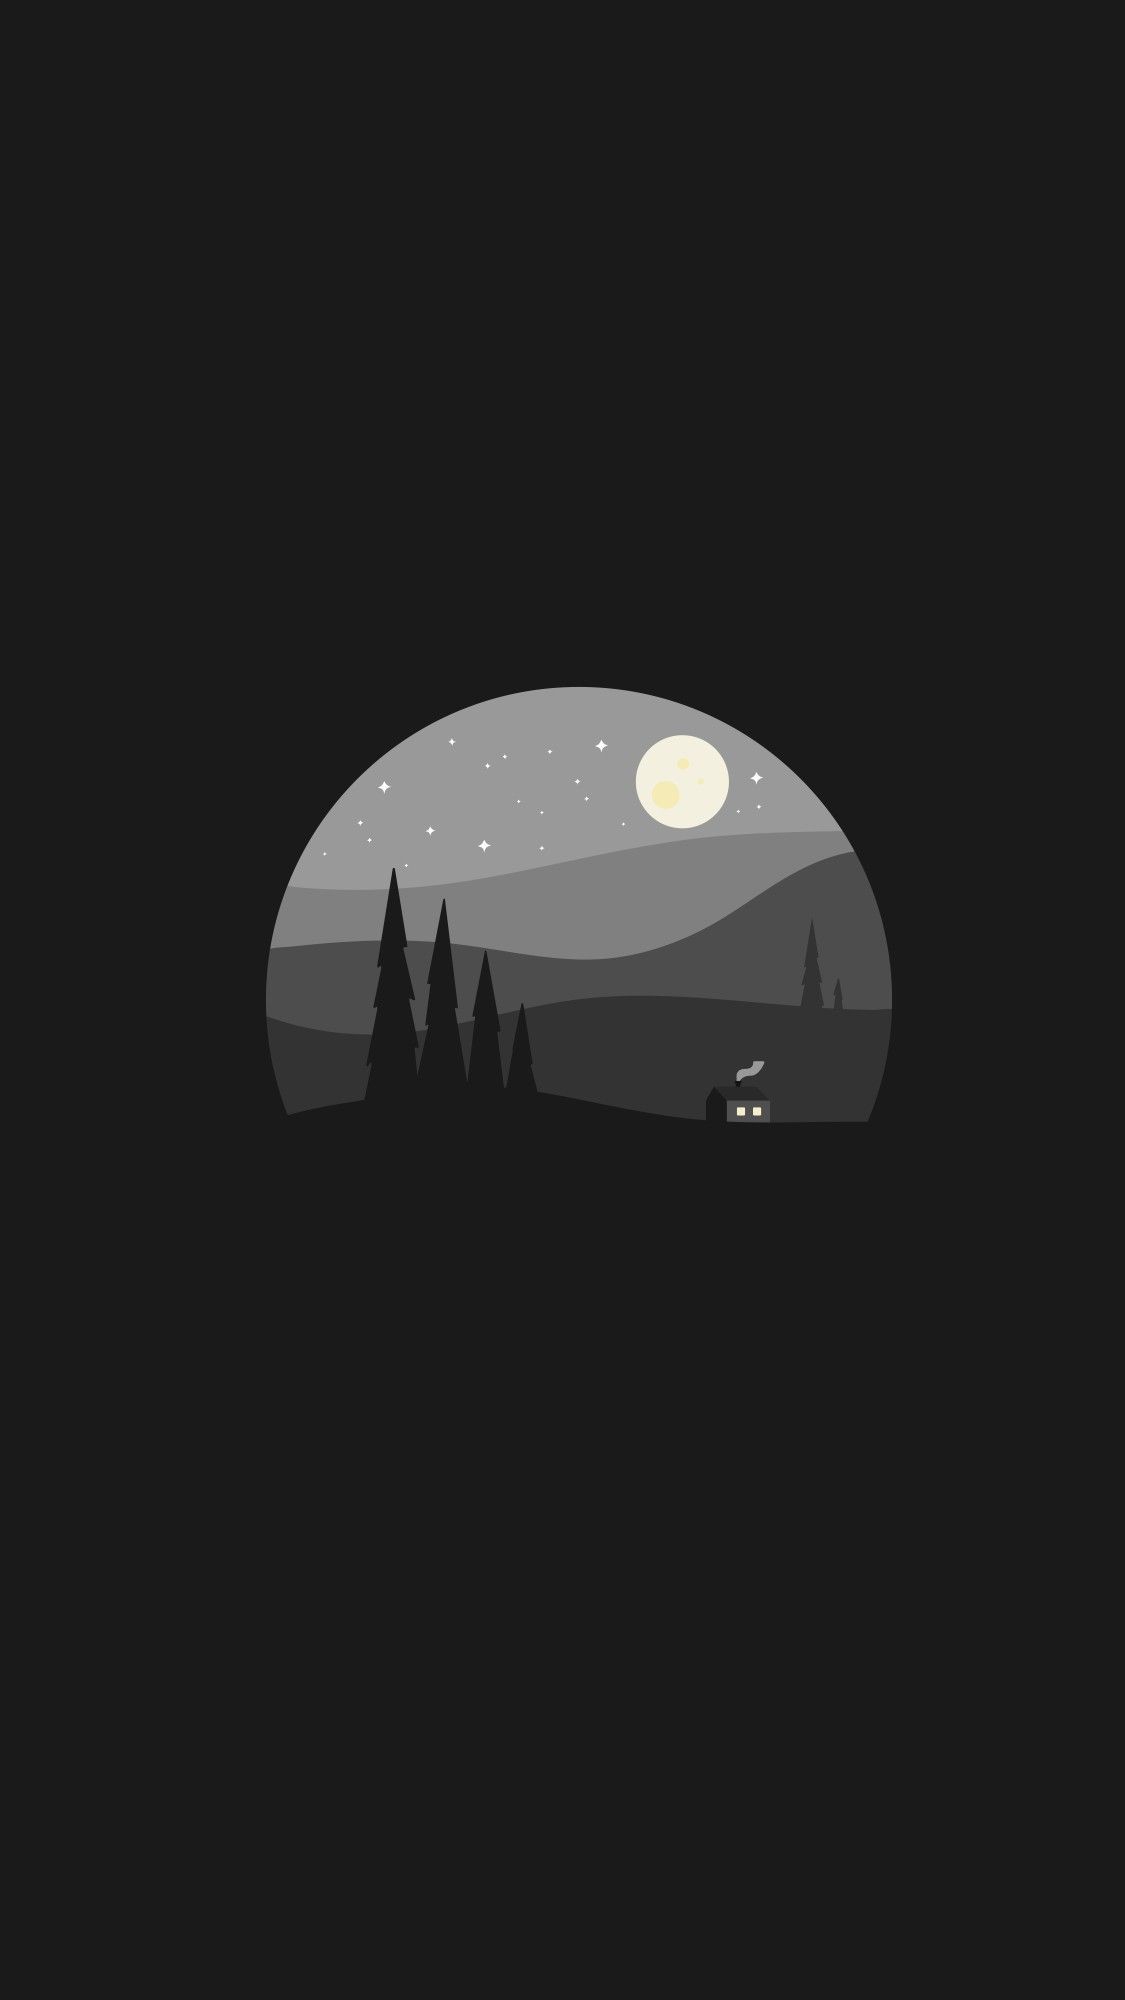 Android Wallpaper For Mobile Black Clean Minimal Wallpaper Android Wallpapers In 2019